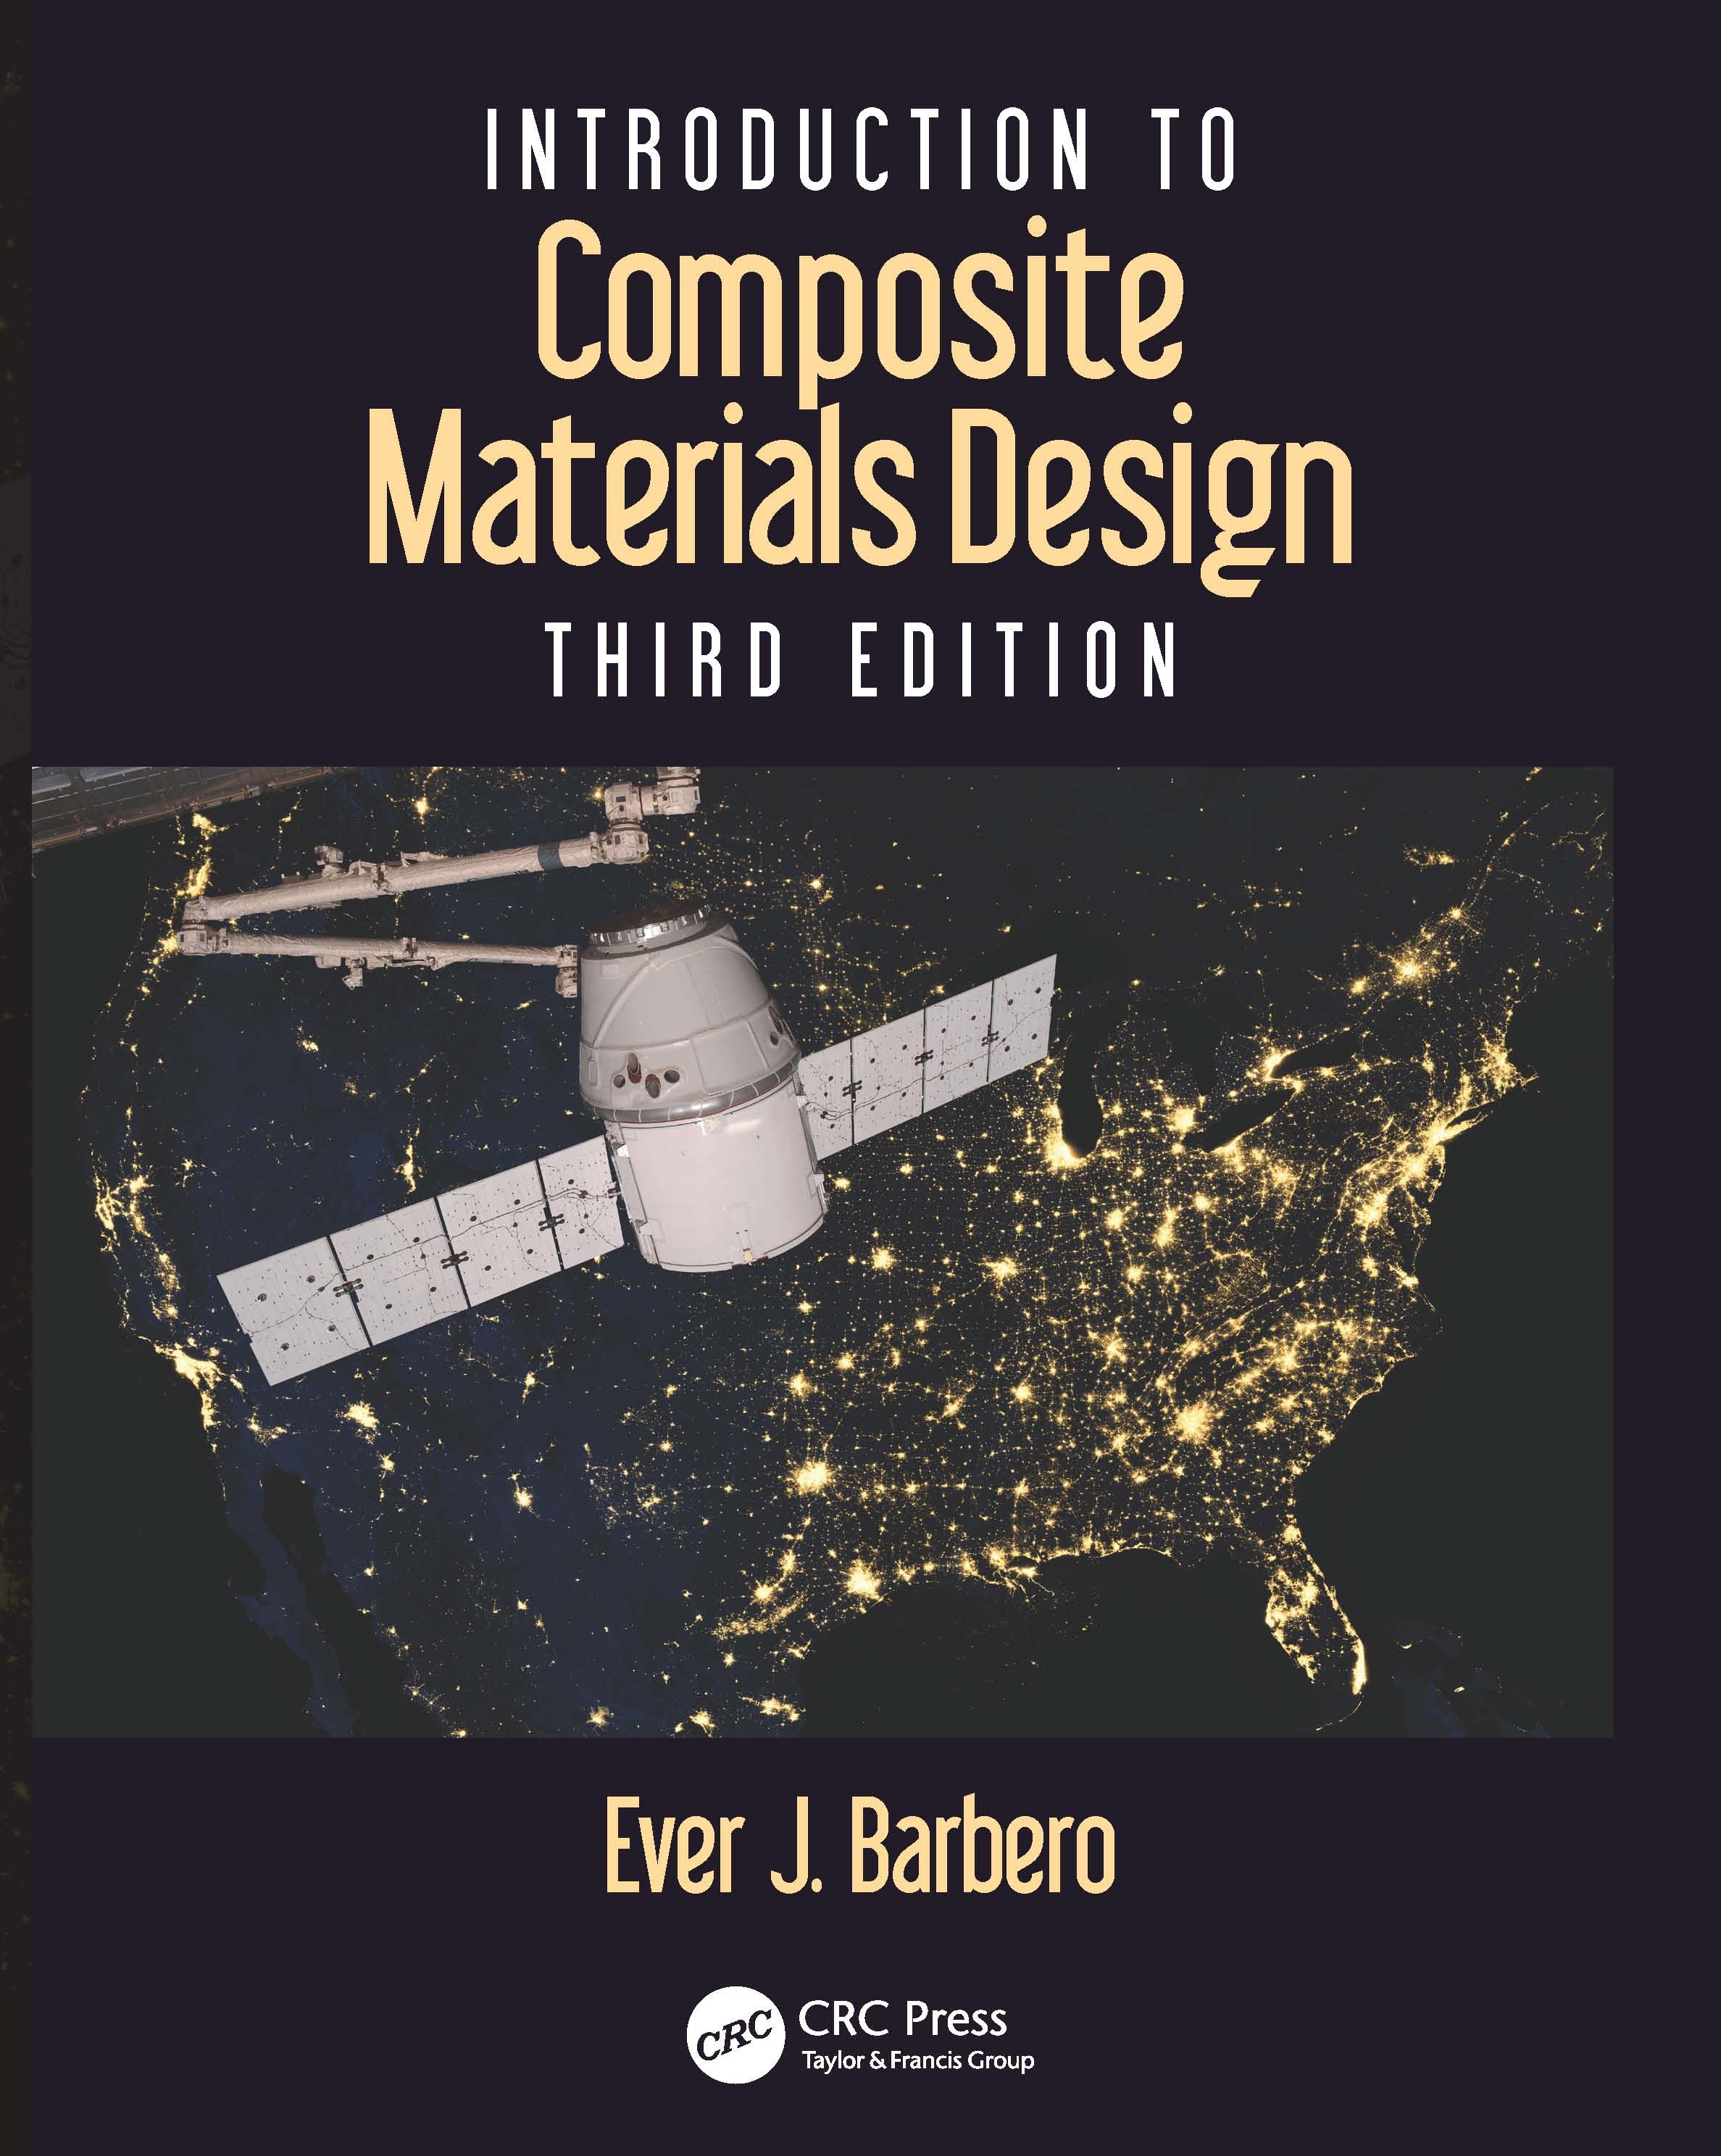 Introduction to Composite Materials Design - Third Edition